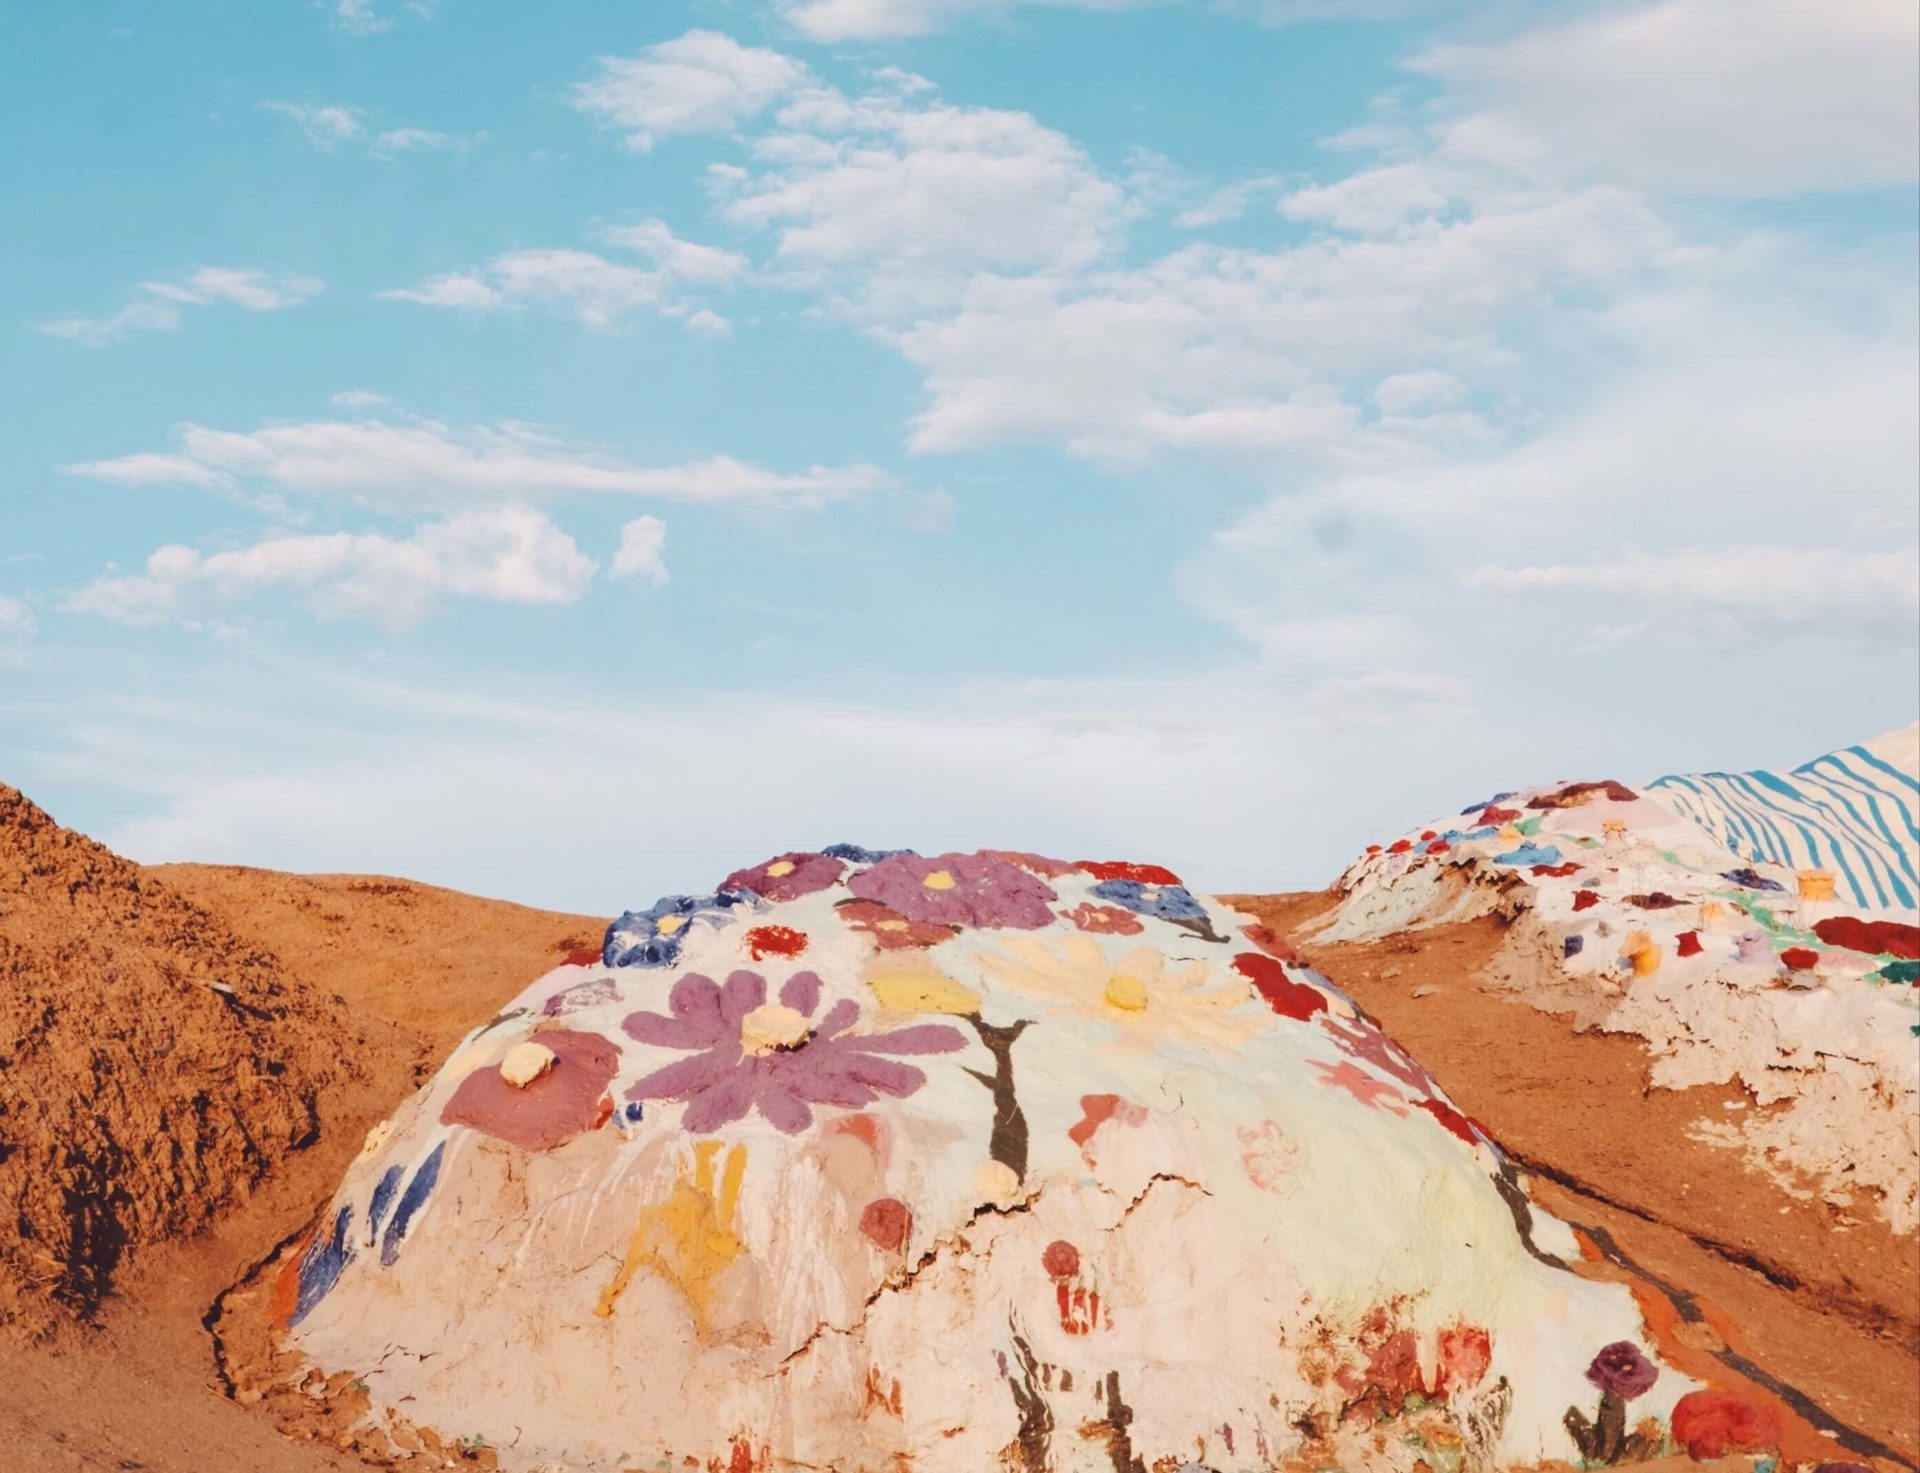 Colorful painted sand dunes beneath a blue sky